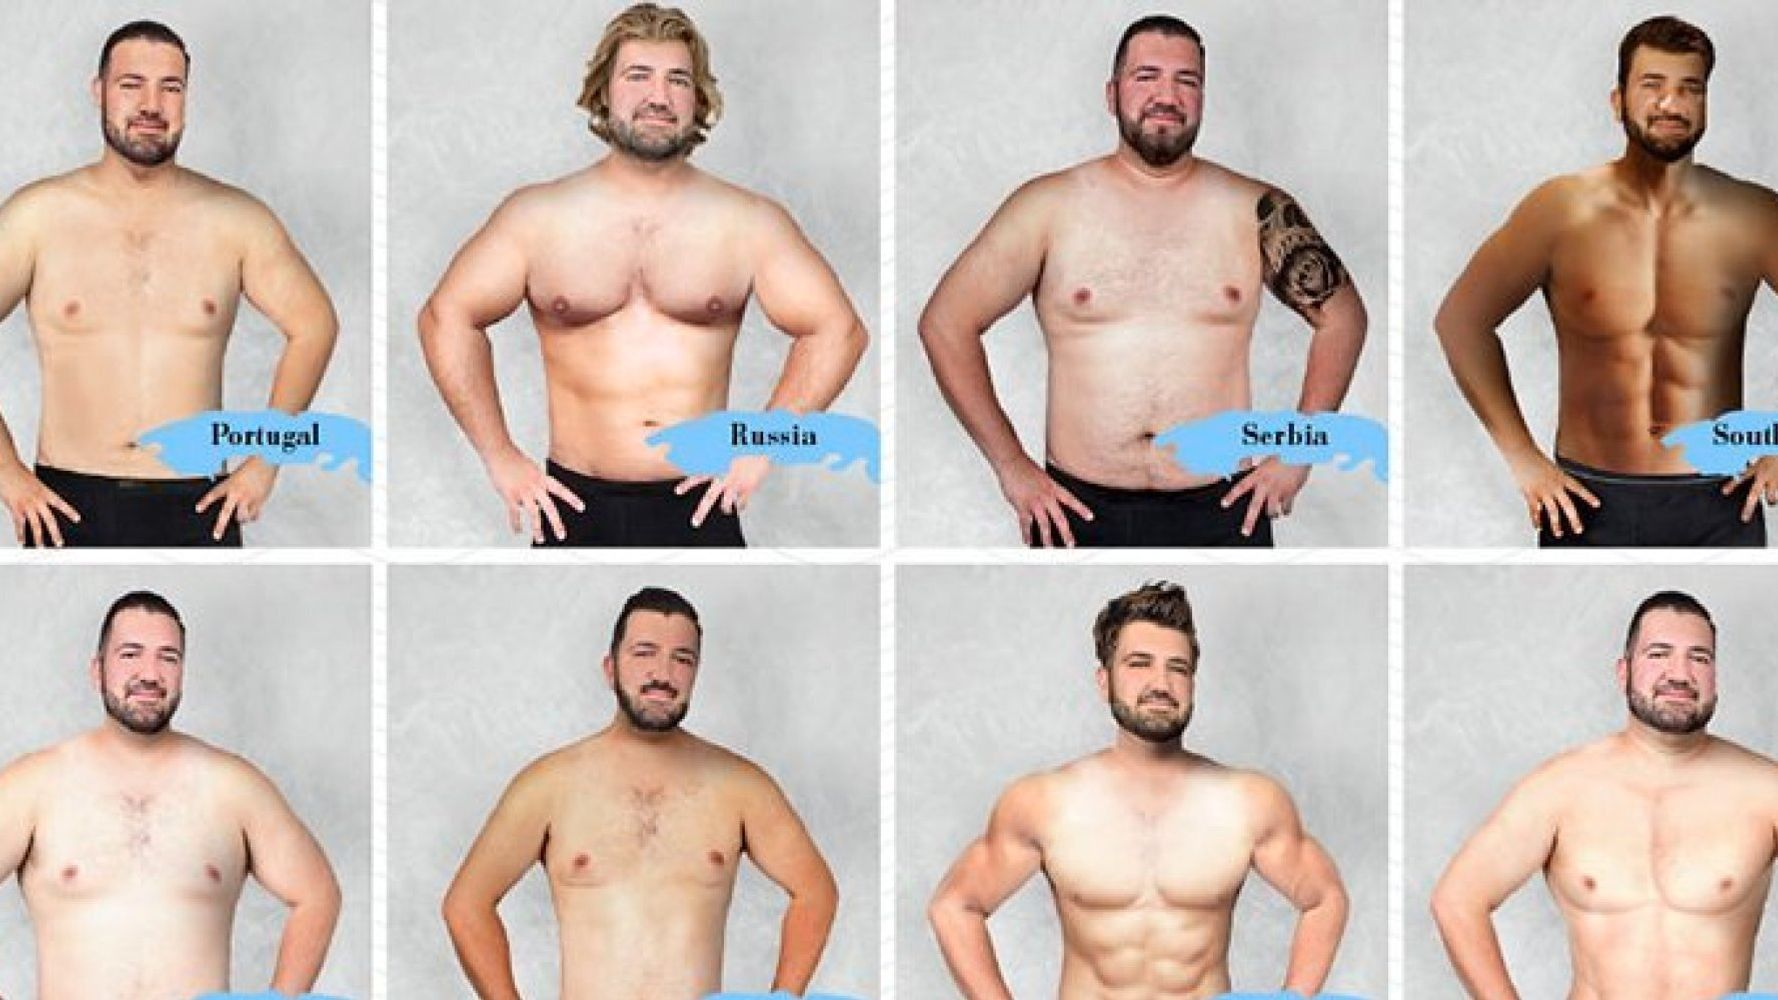 Body Image Project Reveals What The 'Ideal Men's Body' Looks Like Around The World